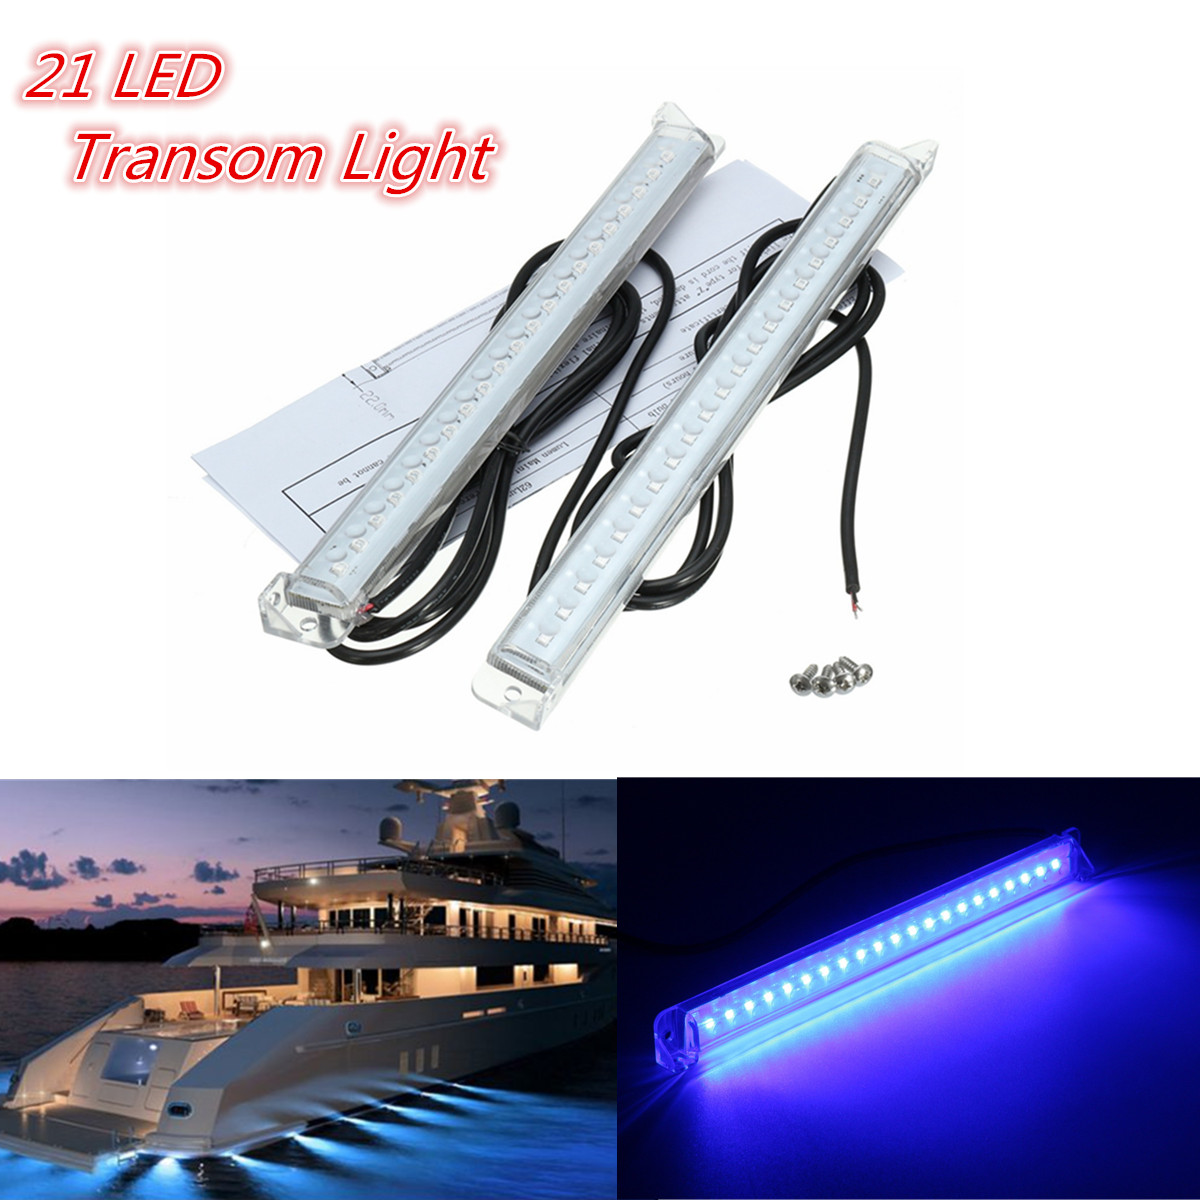 Boat Parts & Accessories 2x 12v 21led Marine Yacht Boat Led Underwater Light Fishing Boat Marine Kit Trim Tab Light Kit Transom Stern Bar Blue Waterproof High Safety Marine Hardware